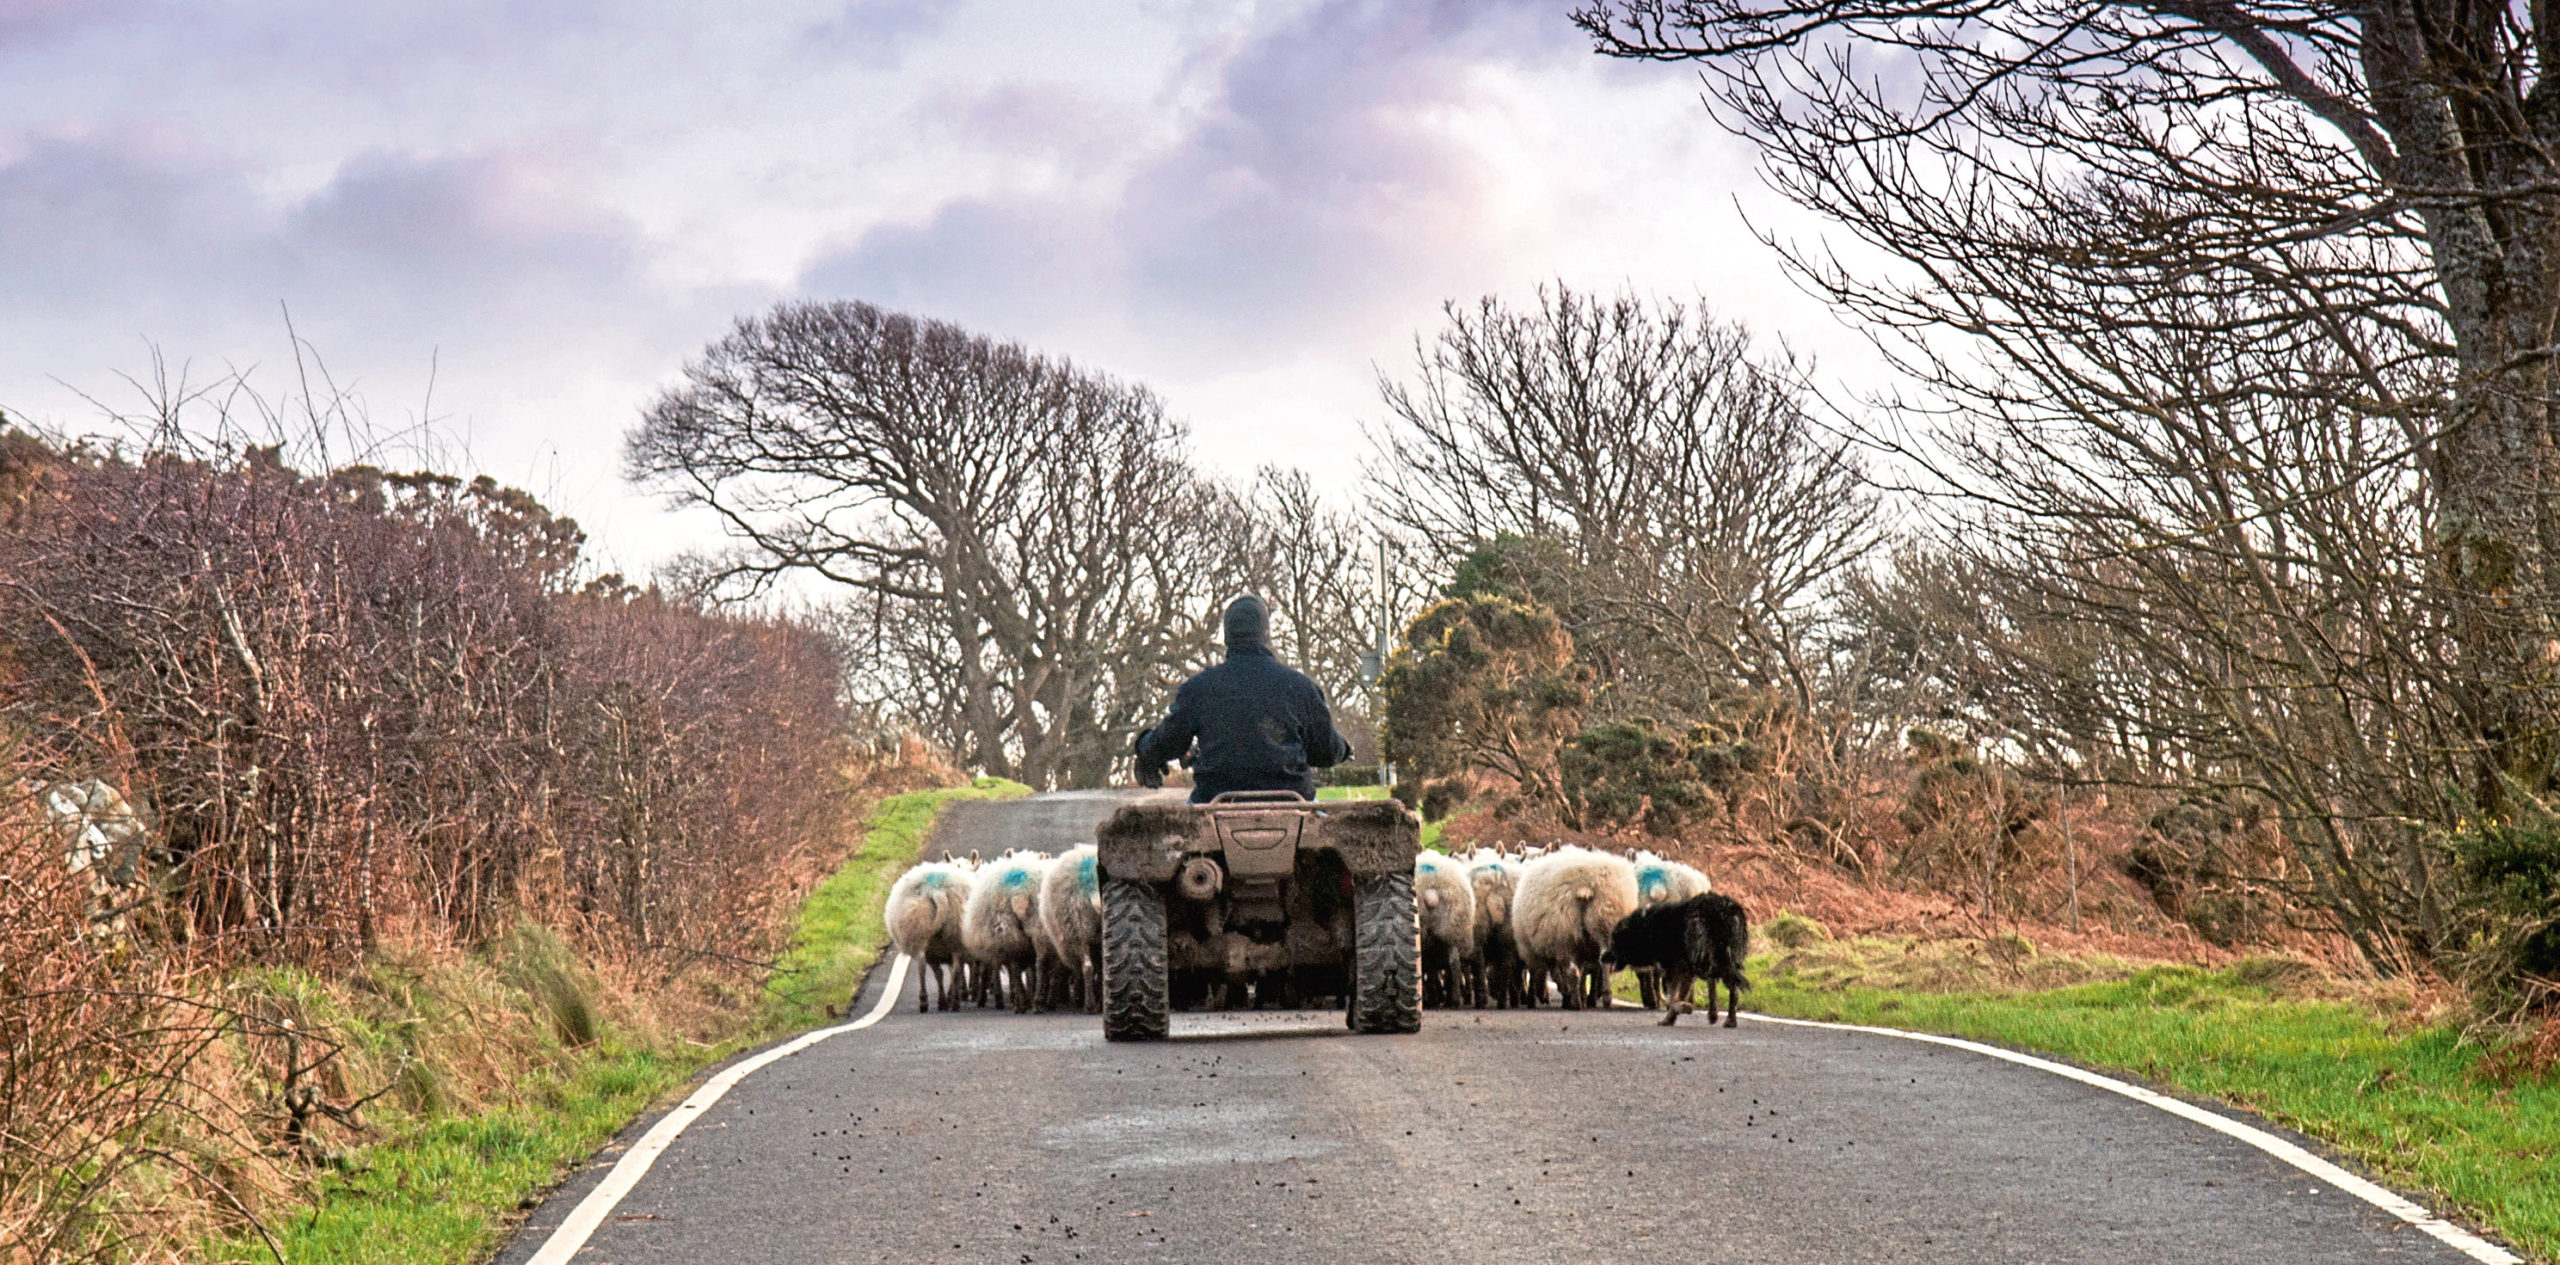 Three out of four Scottish farmers have a pessimistic or sceptical view about the industry's future outside of Europe, according to a new survey.